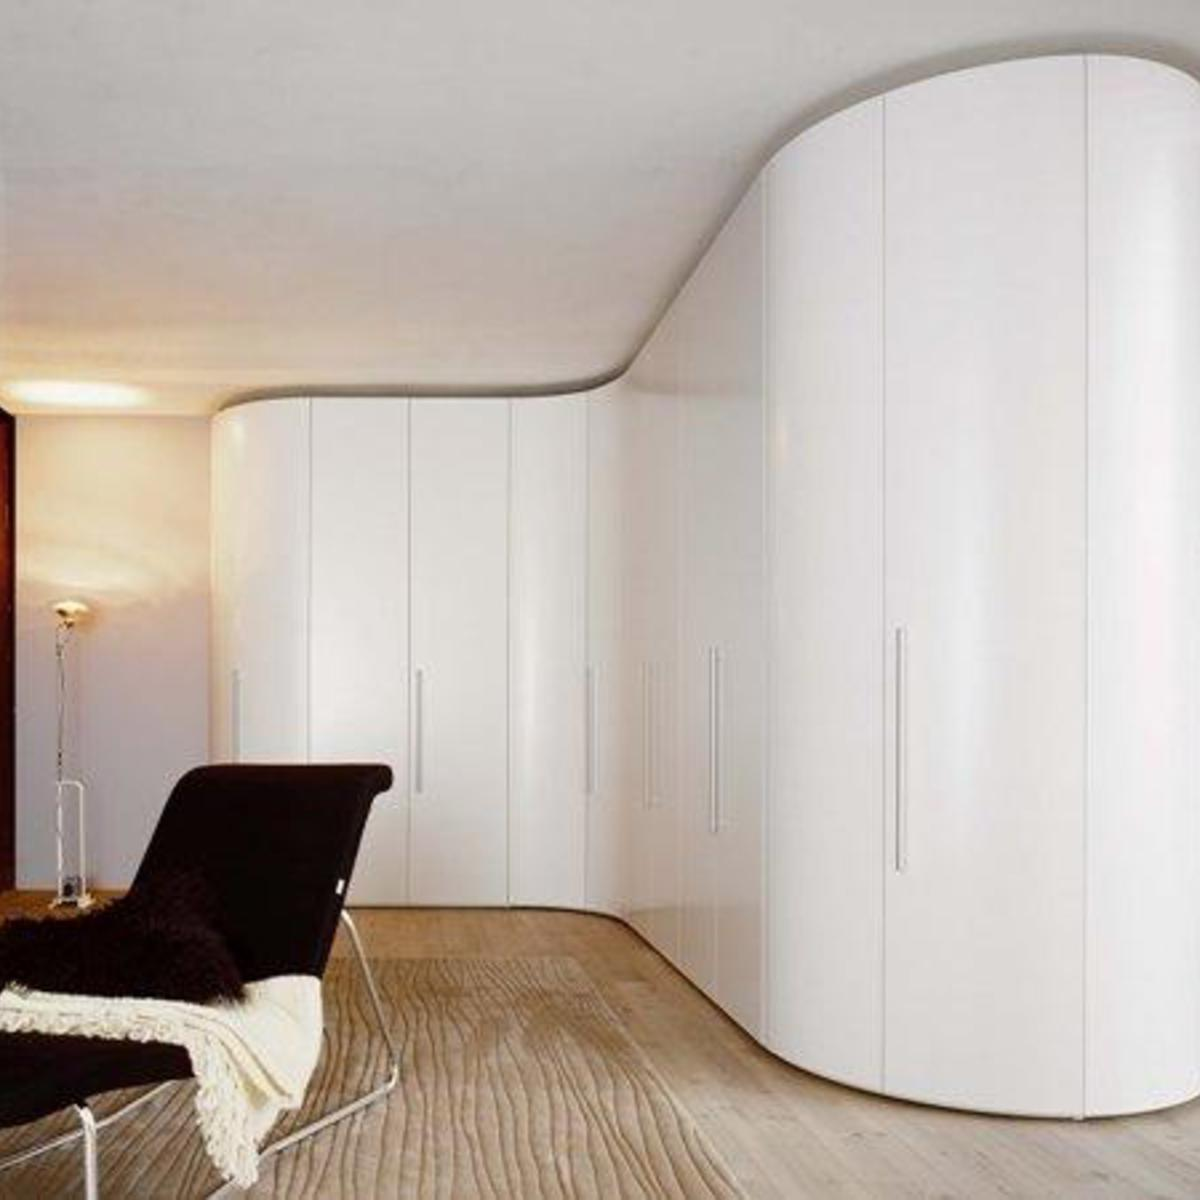 Contemporary Designer Curved Wardrobe Robinsons Beds